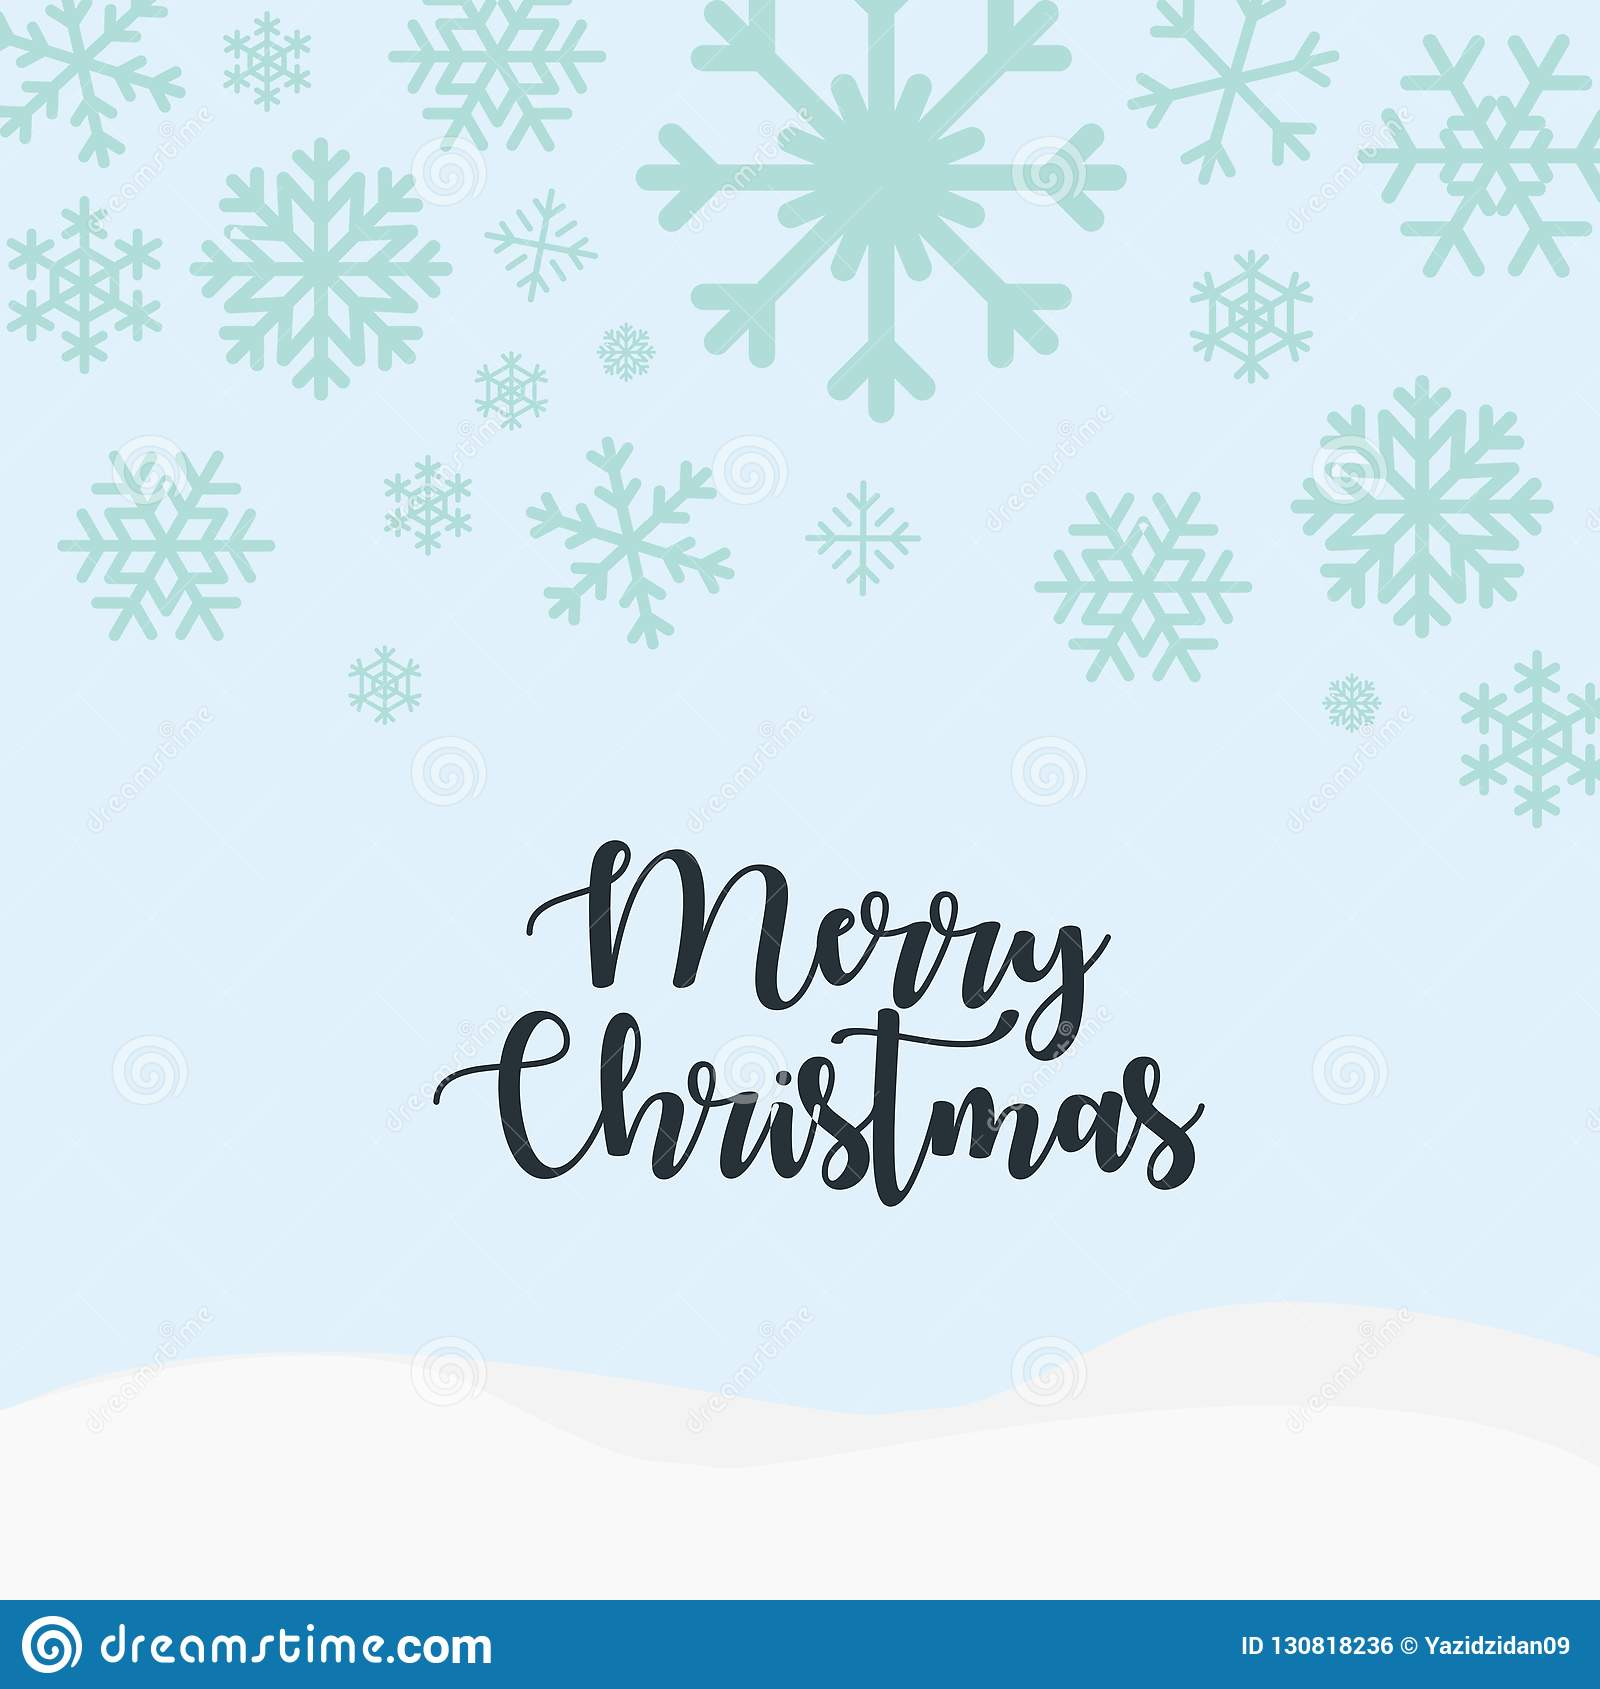 Cute Merry Christmas Greetings Card Background 2019 Stock